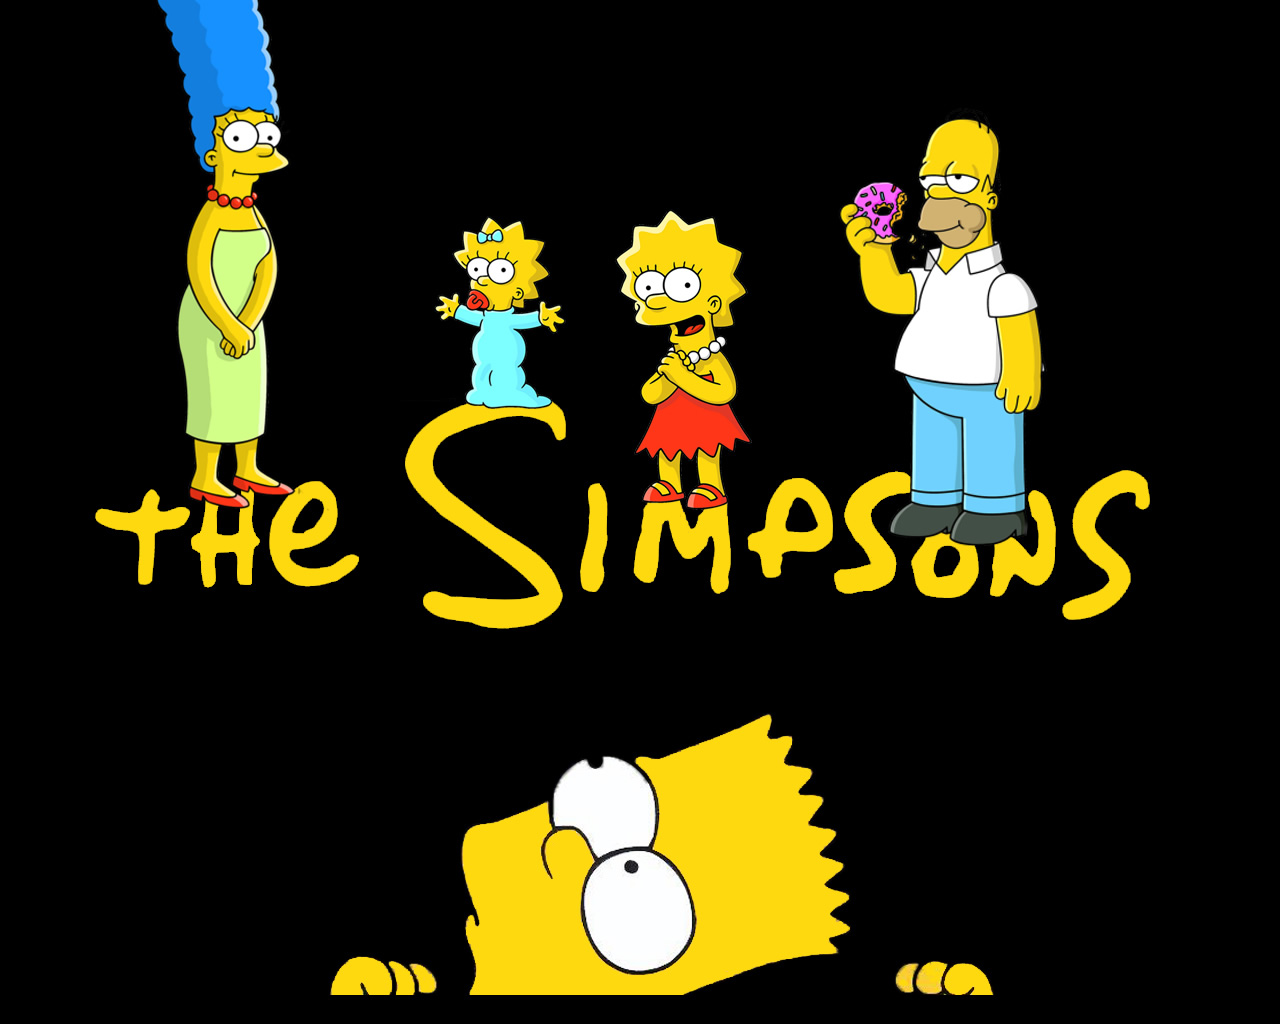 Simpsons Family Simpson Wallpaper Download The The 1280x1024